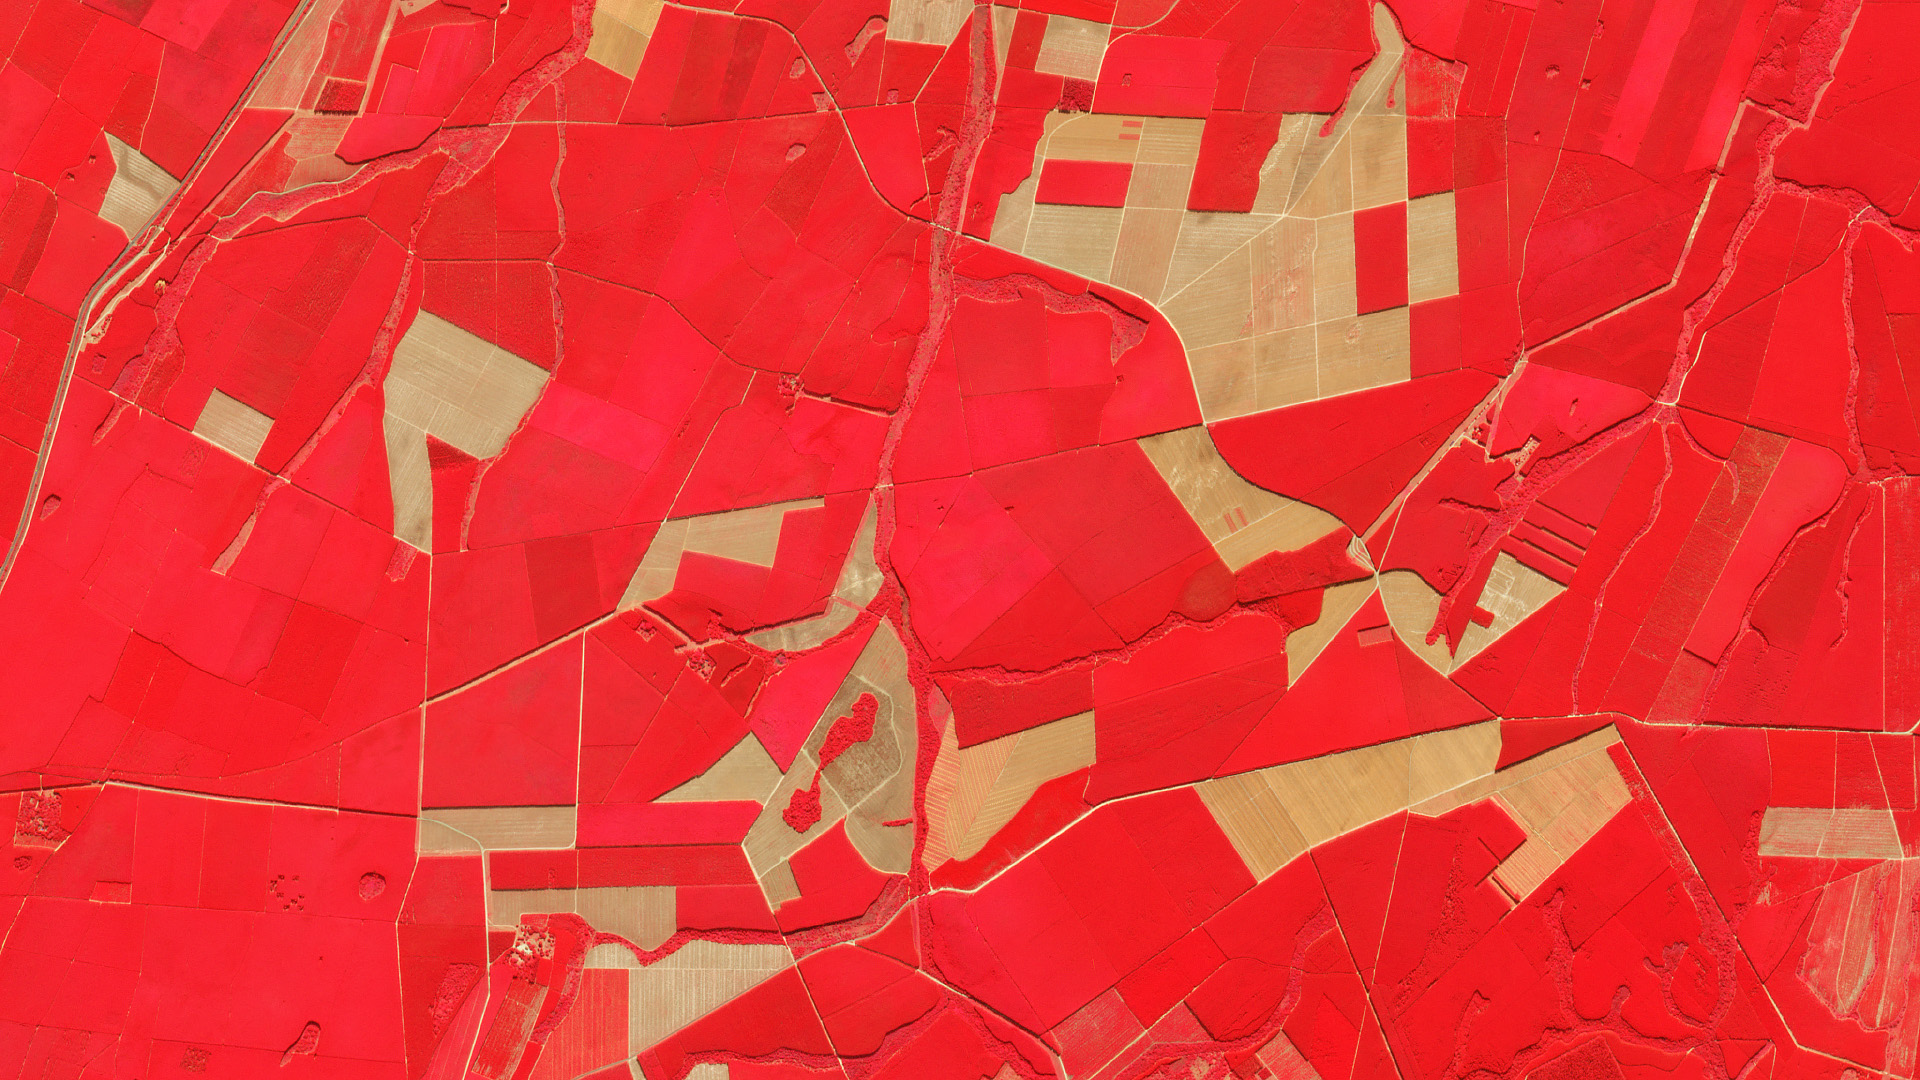 Near-infrared, red, green false-color composite of timber stands near Mtubatuba, South Africa. June 4, 2019. © 2019, Planet Labs Inc. All Rights Reserved.